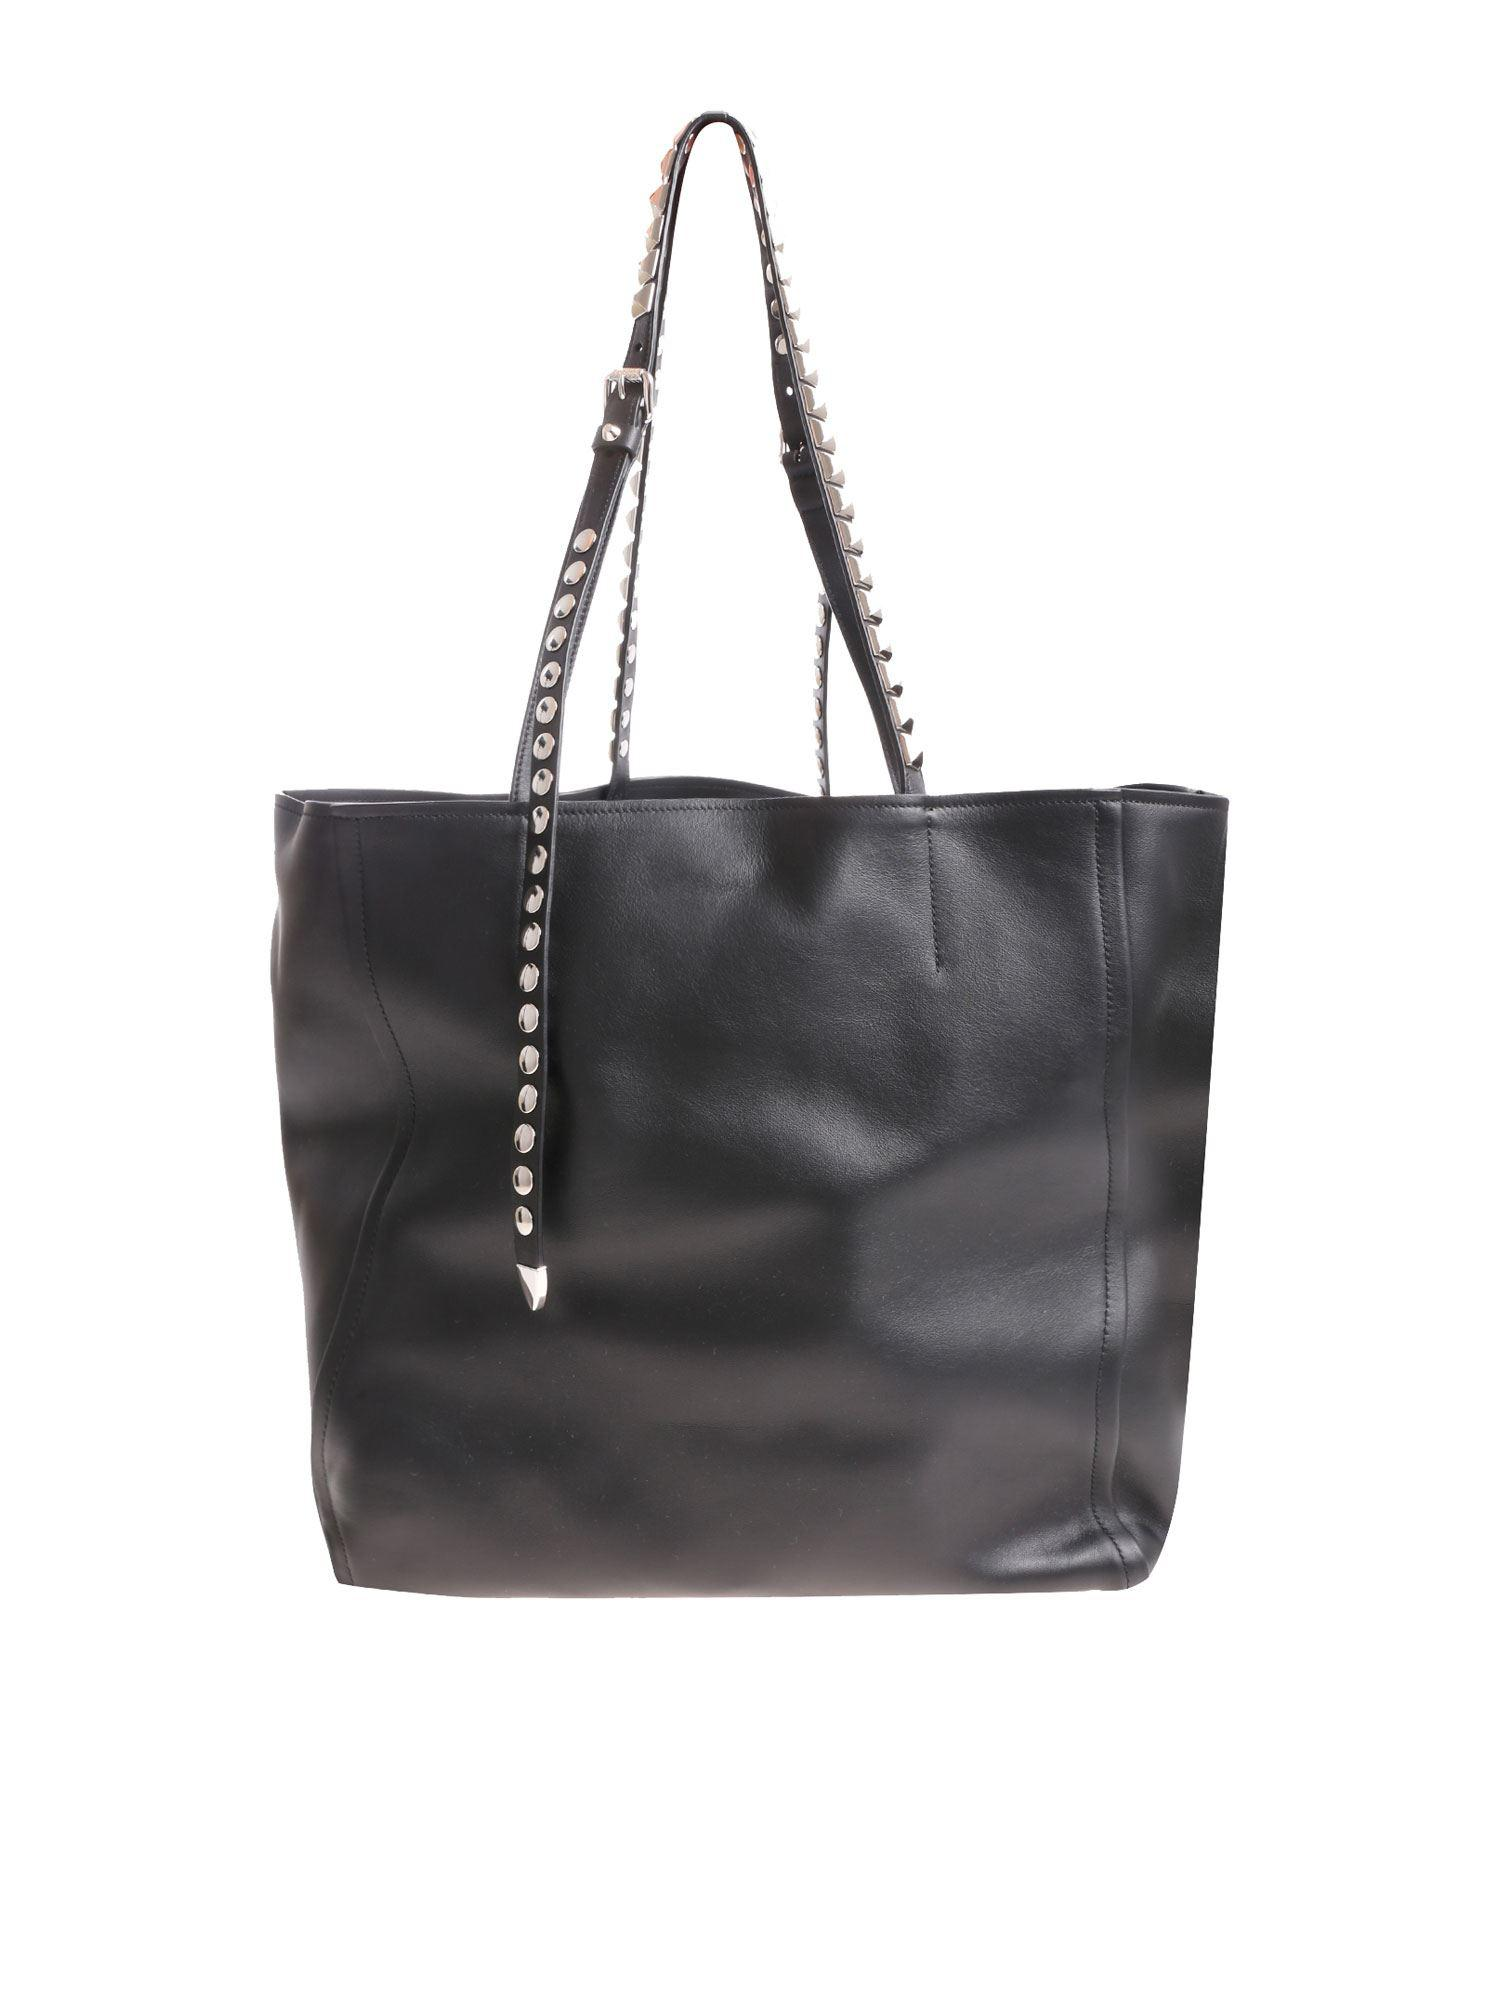 0367b4259404 Prada Black Shoulder Bag With Studs in Black - Lyst